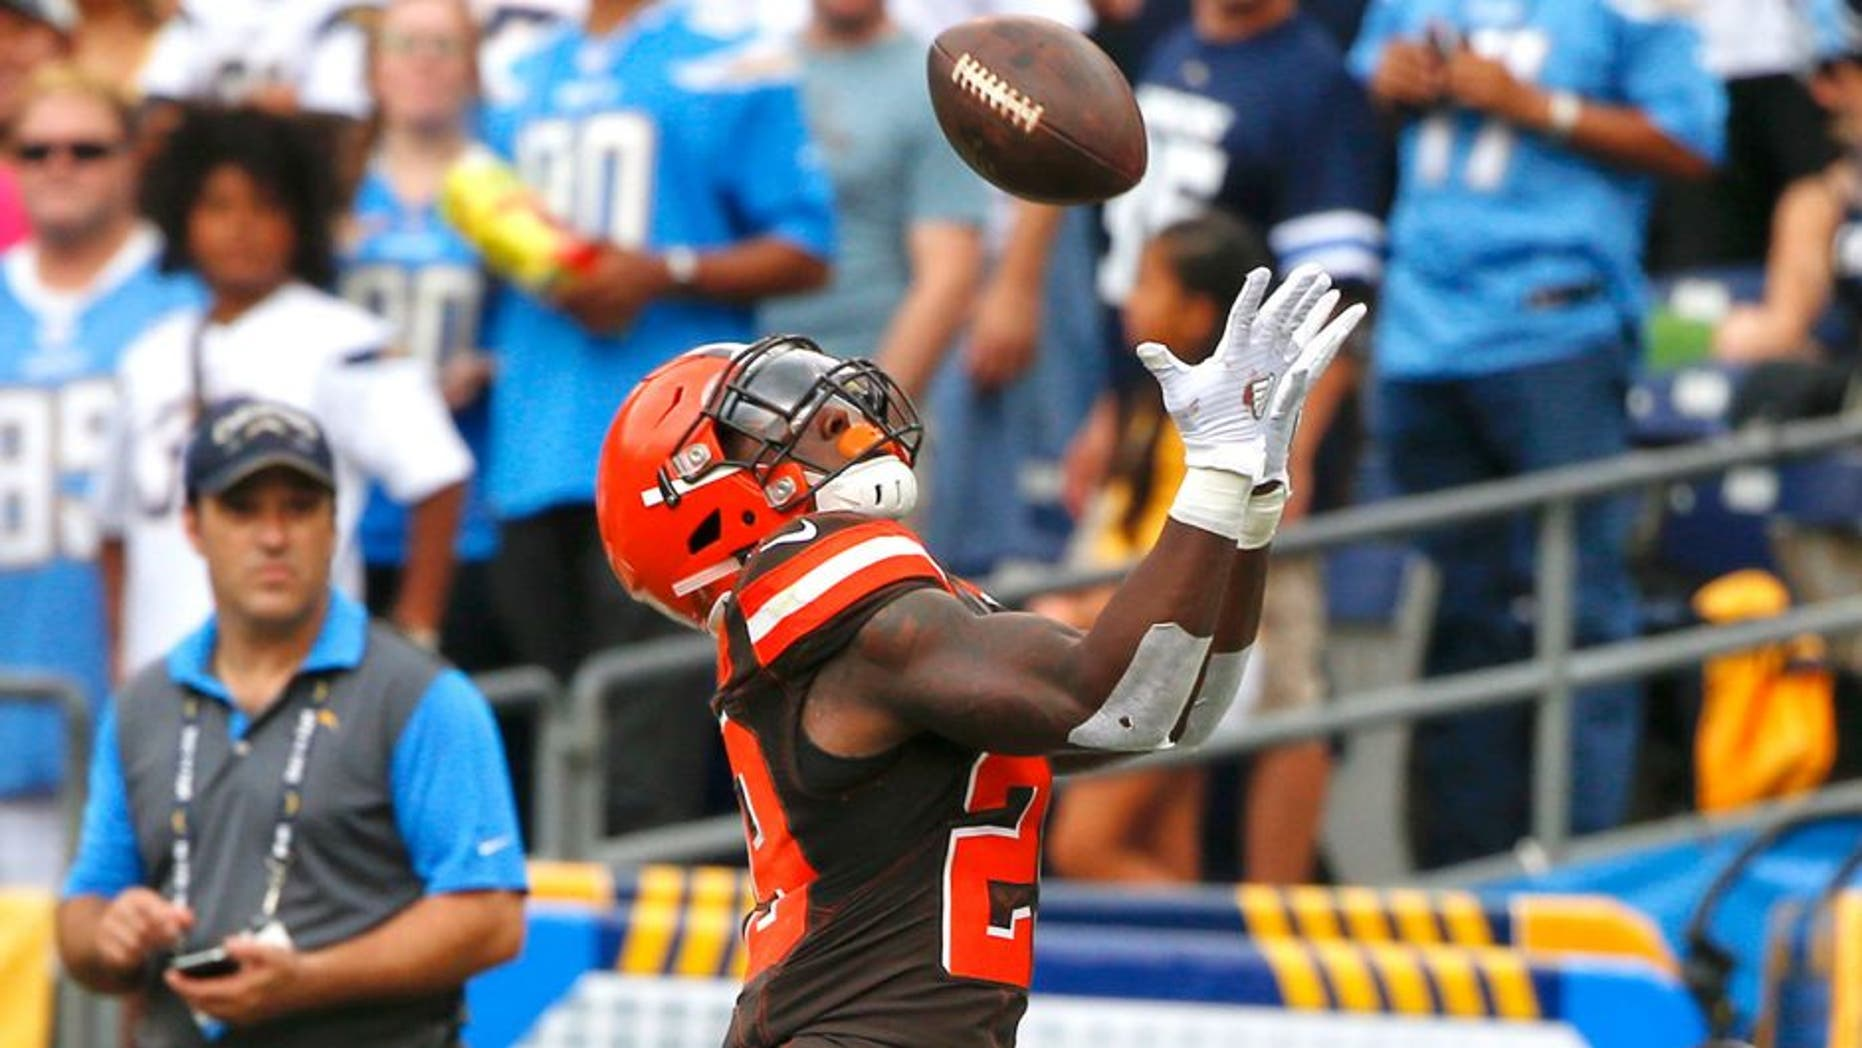 Cleveland Browns running back Duke Johnson makes an end zone catch for a touchdown against the San Diego Chargers during the first half of an NFL football game, Sunday, Oct. 4, 2015, in San Diego. (AP Photo/Lenny Ignelzi)